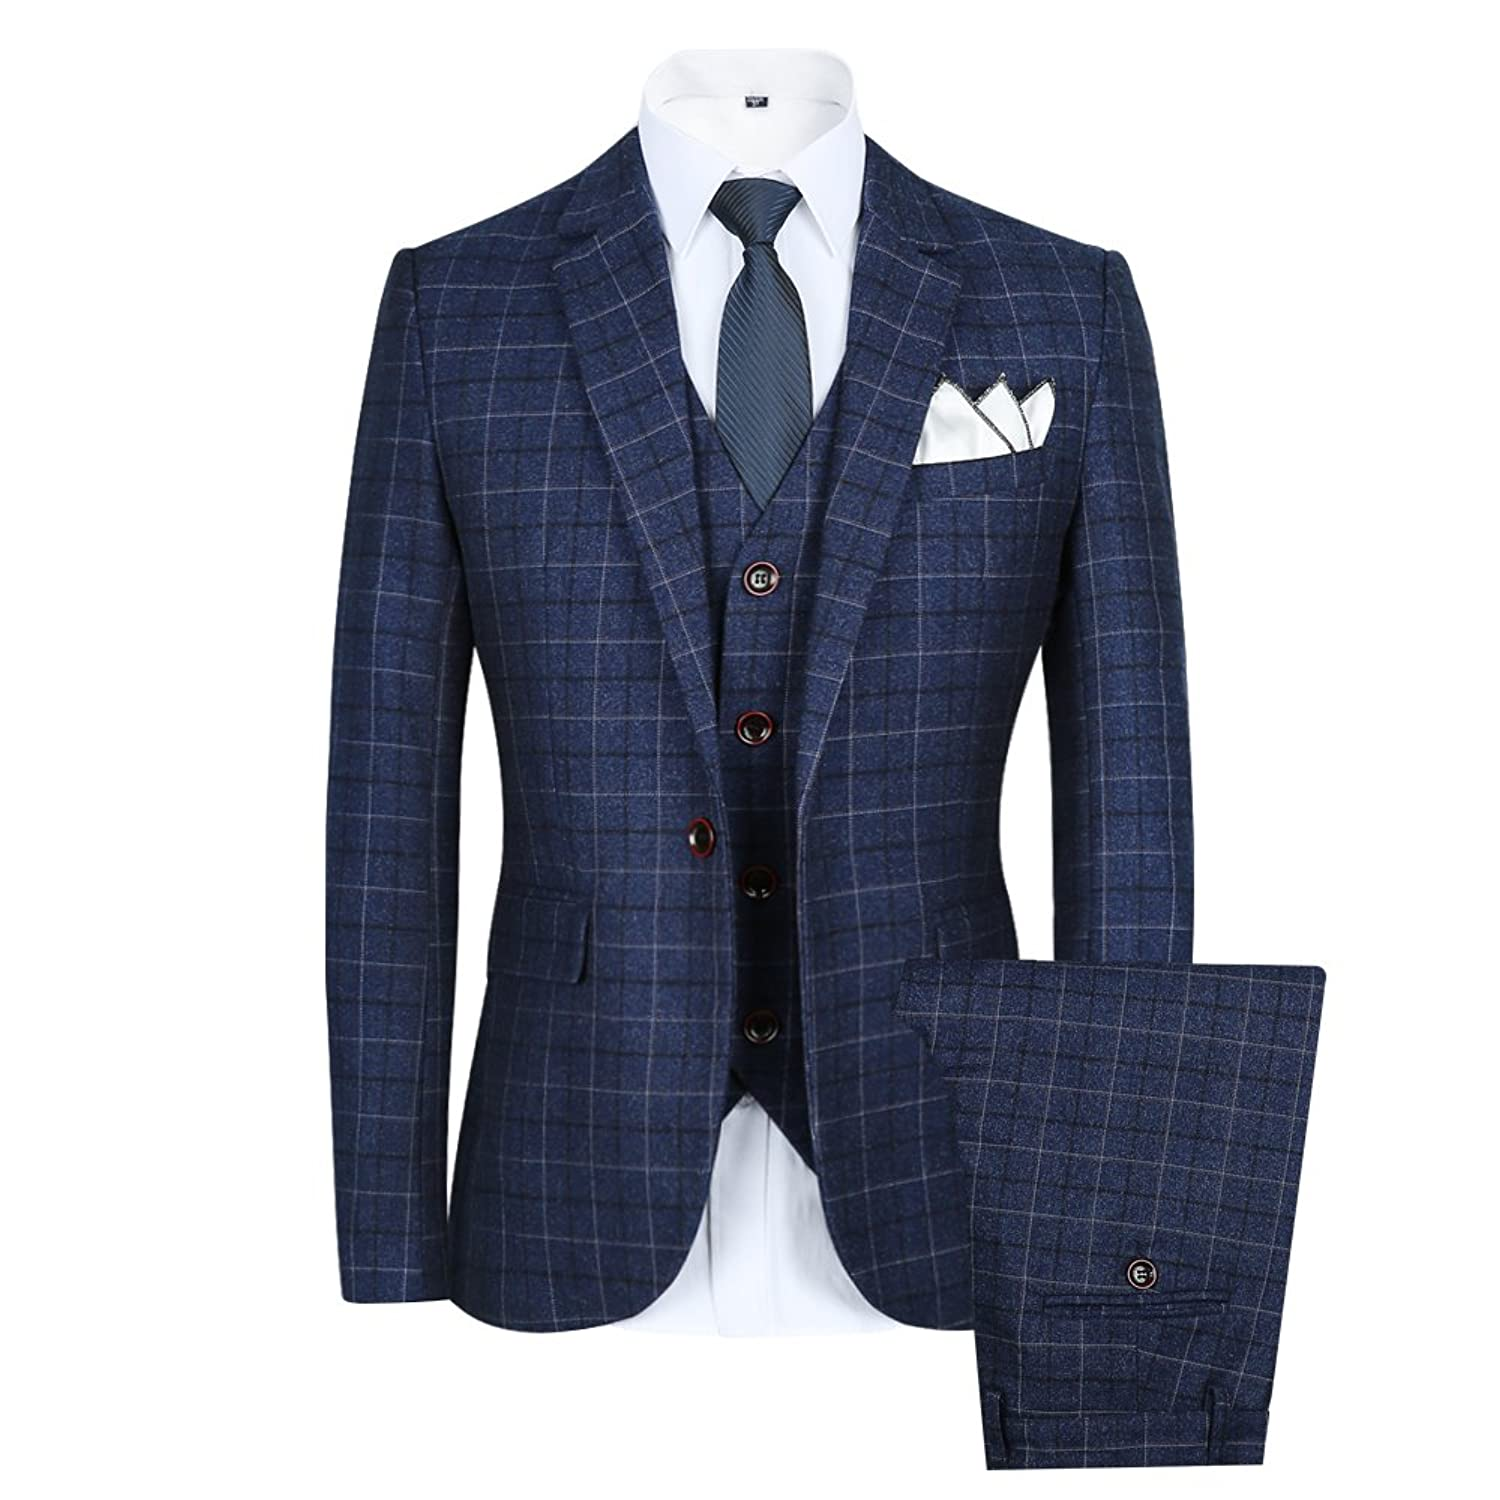 Men's Suits at Macy's come in all styles and sizes. Shop Men's Suits and get free shipping w/minimum purchase! Macy's Presents: The Edit - A curated mix of fashion and inspiration Check It Out.